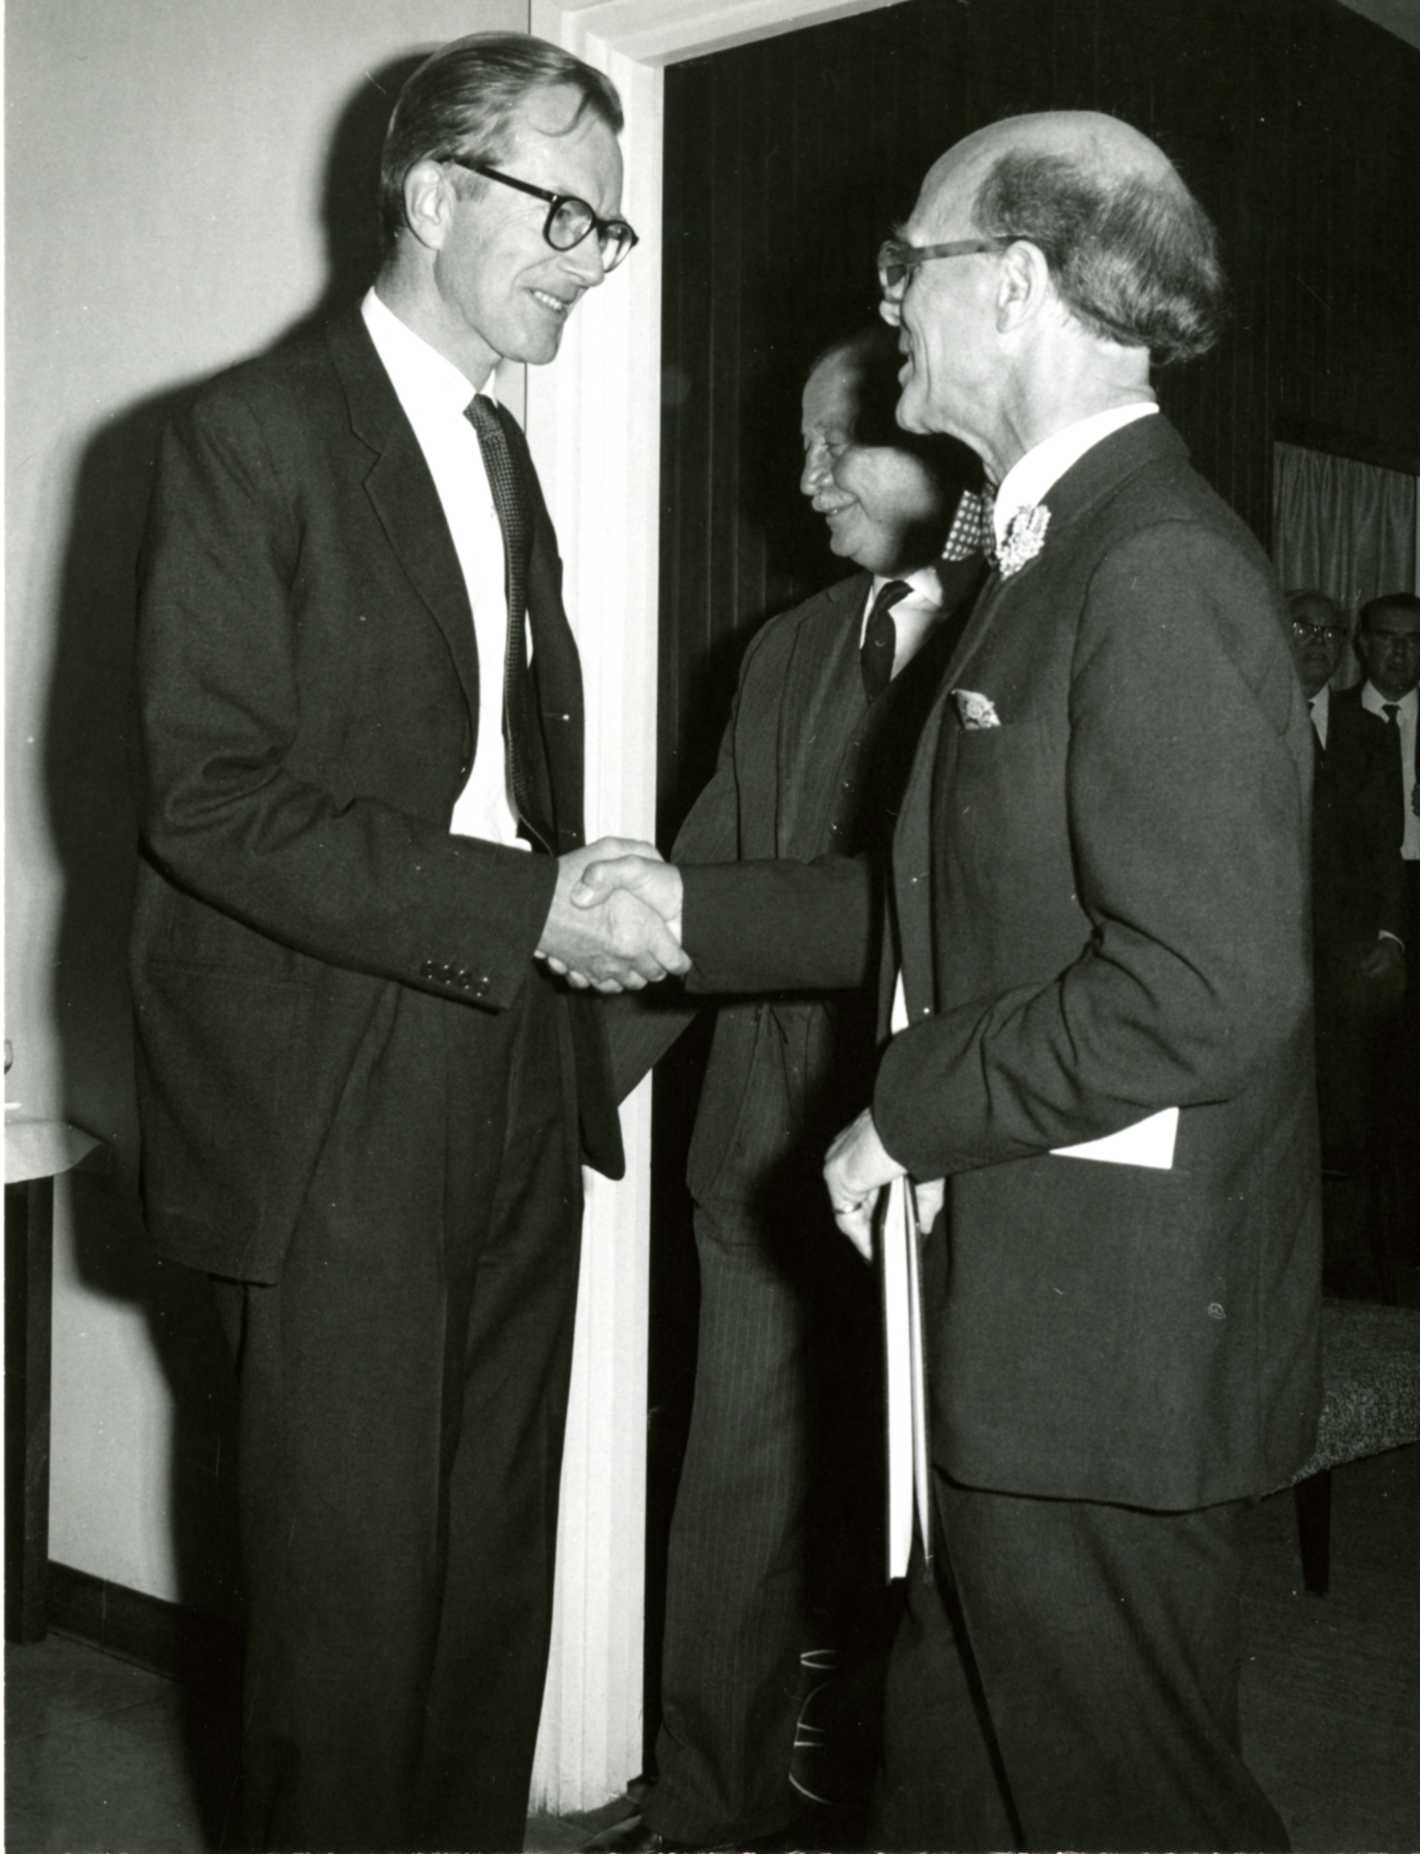 Maurice Wilkins with J.T. Randall at Randall's retirement party, 1970